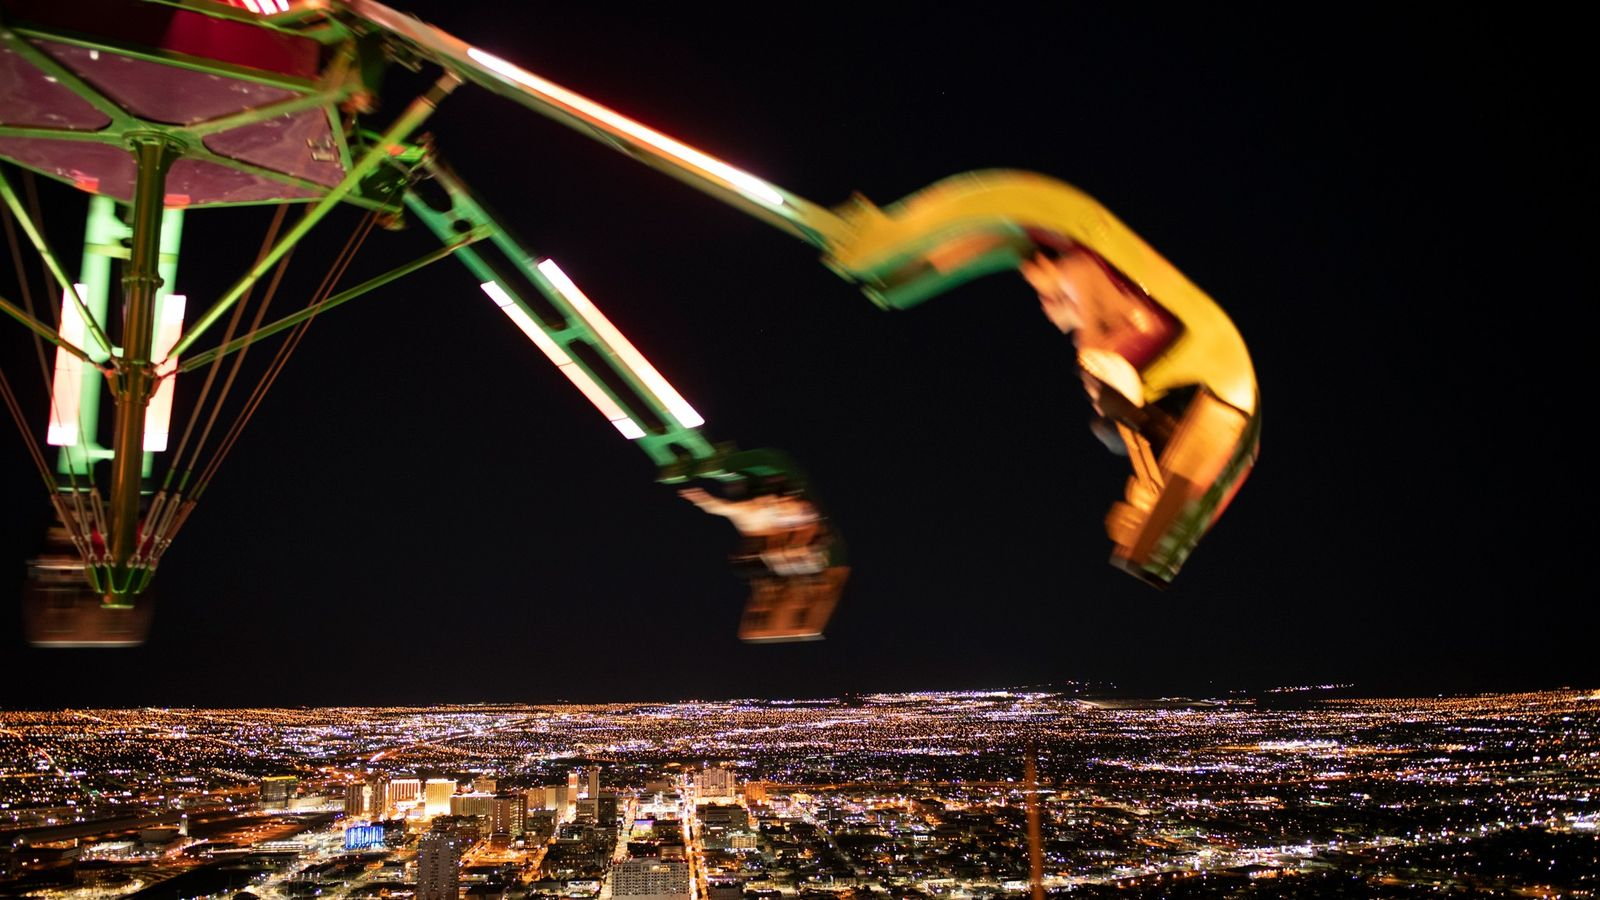 Seen from the Stratosphere tower, Las Vegas is like its own galaxy of nighttime lights. Christopher ...